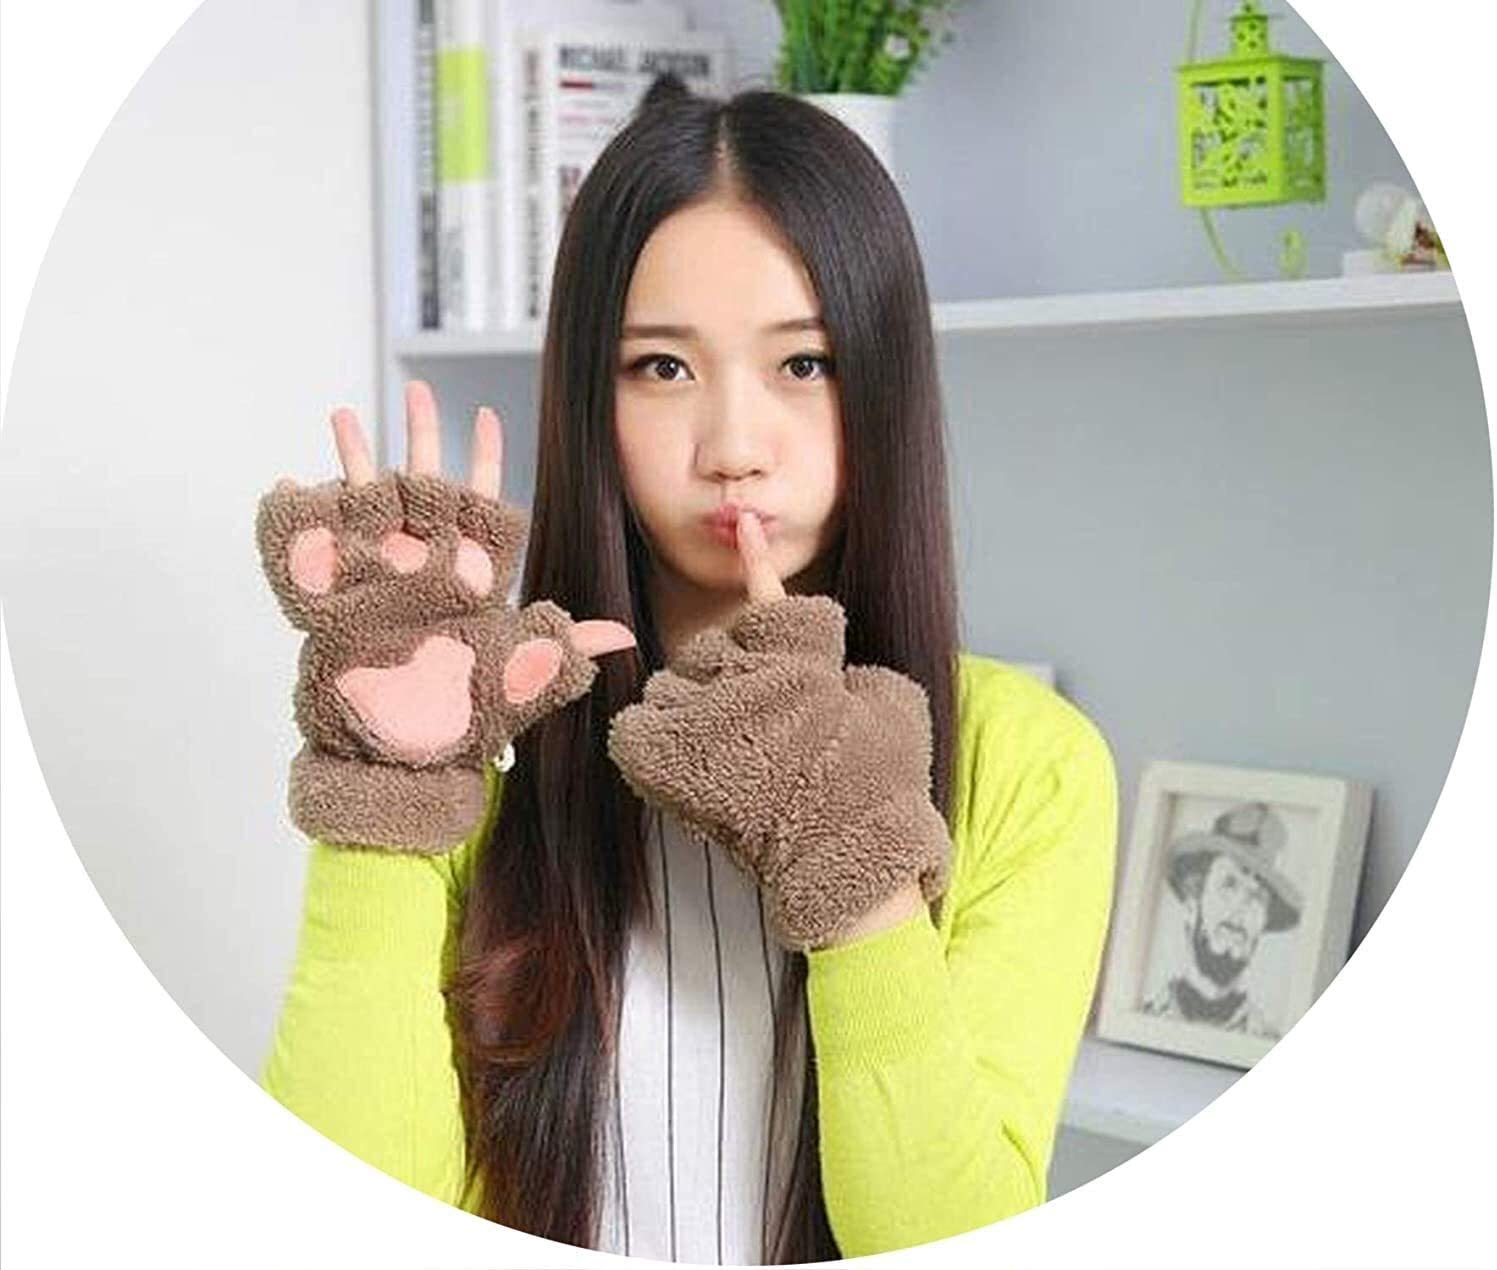 Samantha Warm Gloves Gloves Plush Paw Claw Glove Novelty Halloween Spandex Soft Patchwork Toweling Women (Color : SA085 Khaki, Size : One Size)